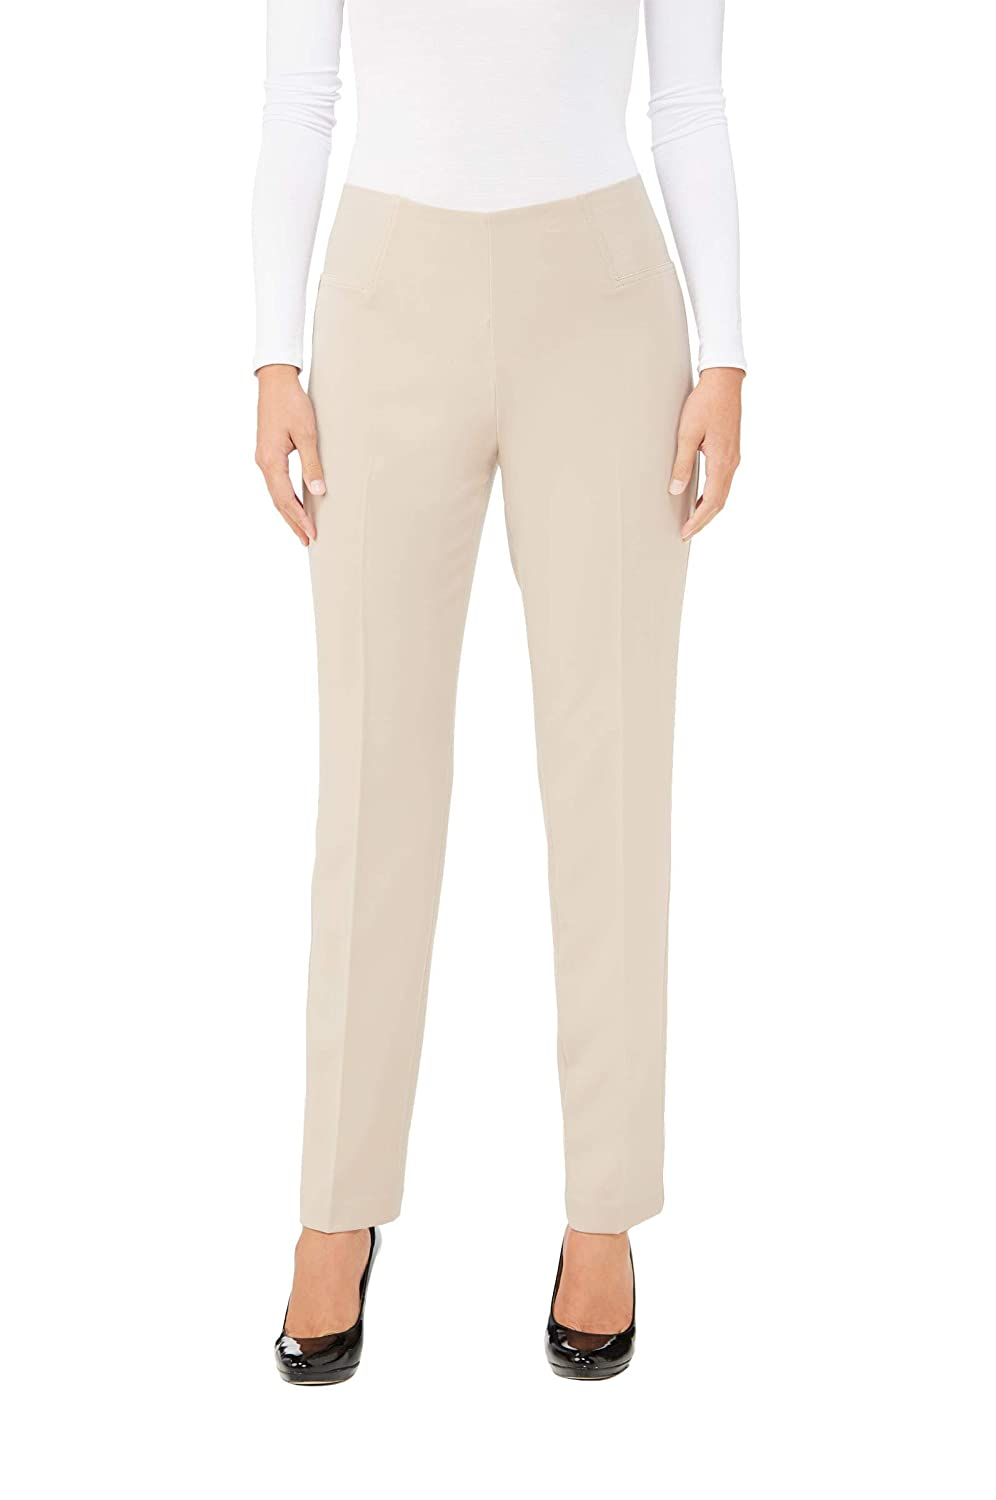 Pull-On So Smooth Slim Leg Pants DK Oyster 18 Nygard